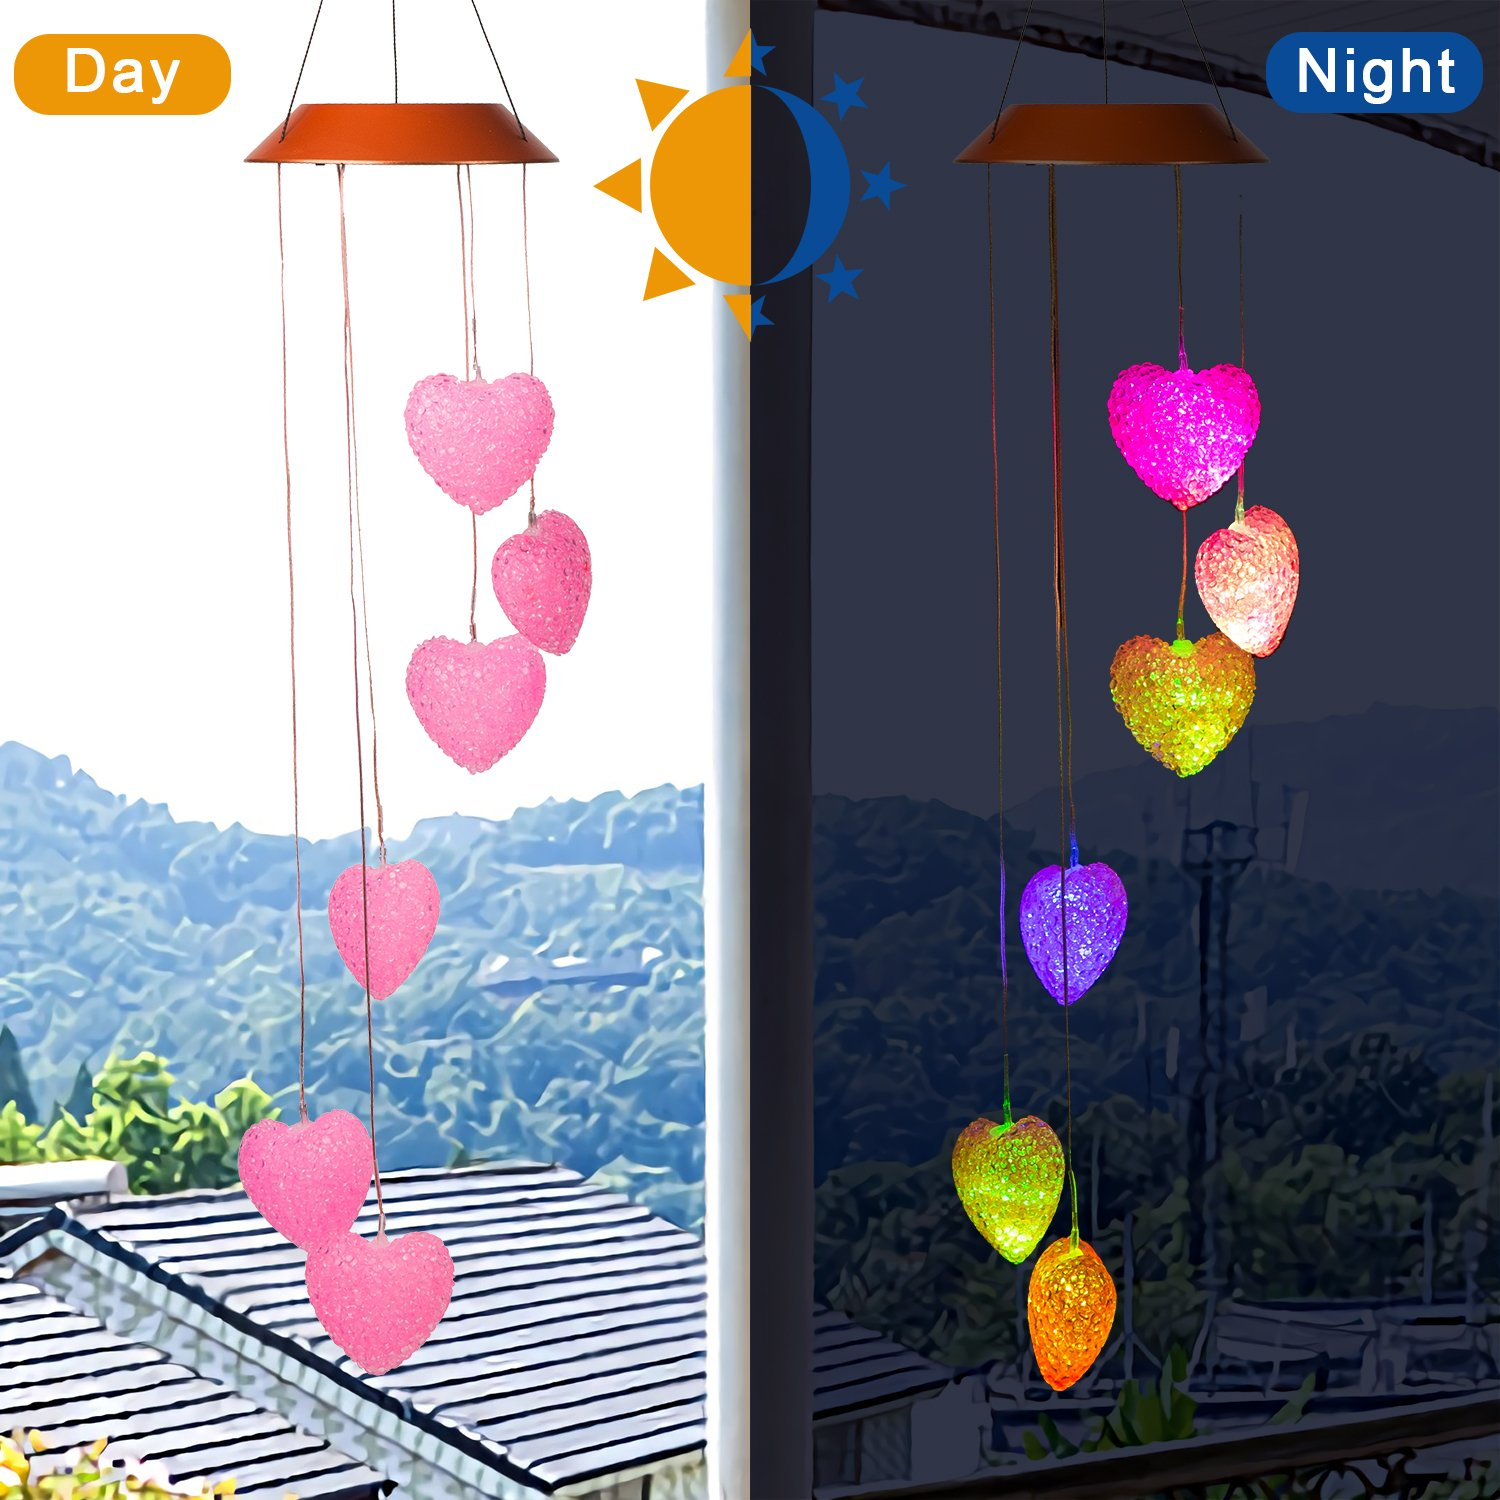 CXFF LED Solar Wind Chimes Outdoor - Waterproof LED Changing Light Color Wind Chime, Wind Chimes for Home, Party, Night Garden Decoration (Pink Heart-shaped)